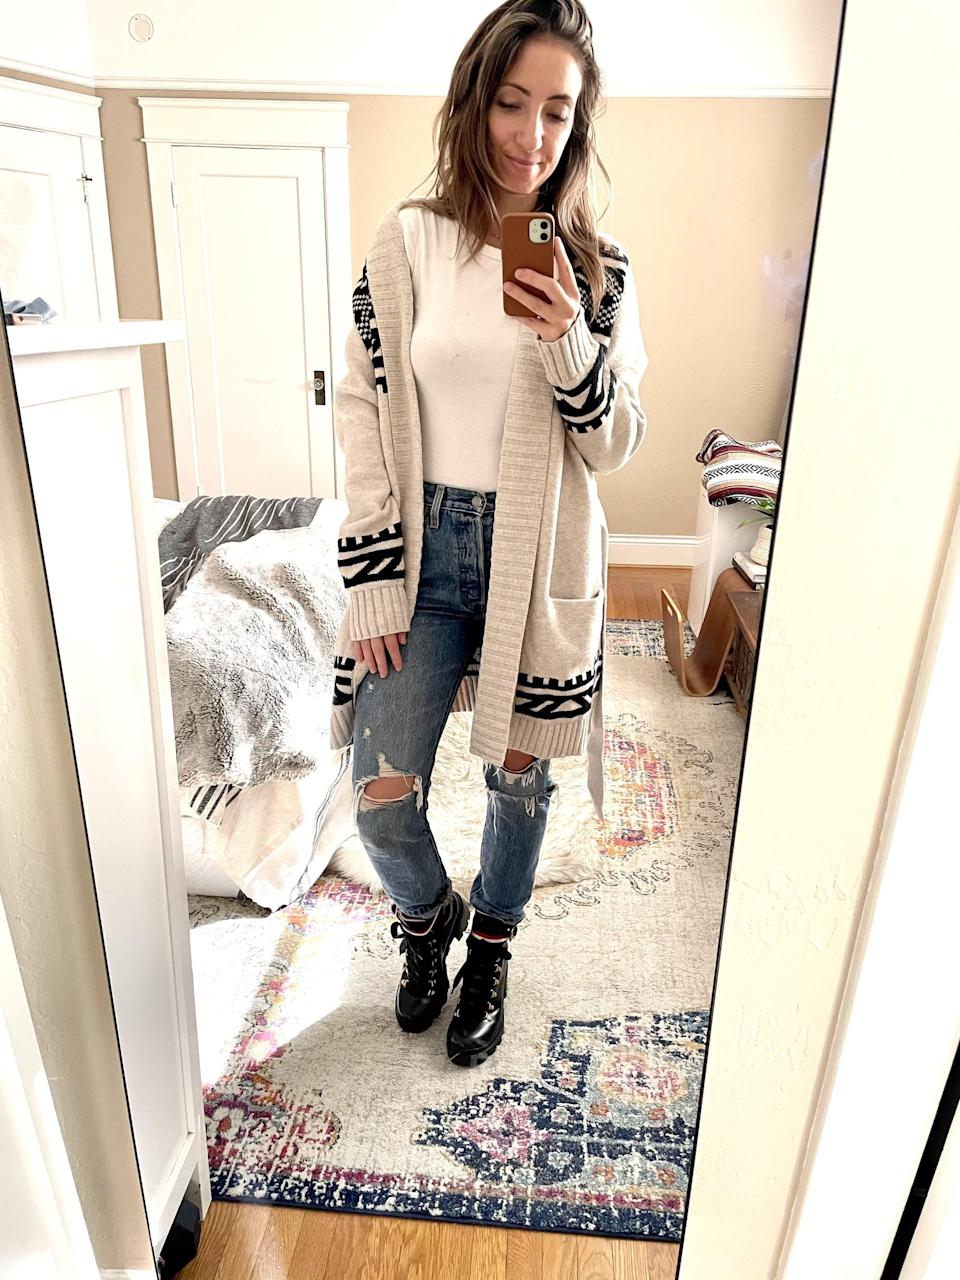 """<p><strong>The item:</strong> <span>Old Navy Cozy Fair Isle Tie-Belt Cardigan Sweater</span> (Sold Out)</p> <p><strong>What our editor said:</strong> """"It's nice and big - perfect for staying warm. I wore it with medium-rinse ripped jeans, combat boots, and a simple white T-shirt tucked in. The sweater is the standout piece of this look, so I didn't want anything to compete with it."""" - RB</p> <p>If you want to read more, here is the <a href=""""http://www.popsugar.com/fashion/old-navy-cardigan-sweater-review-48009561"""" class=""""link rapid-noclick-resp"""" rel=""""nofollow noopener"""" target=""""_blank"""" data-ylk=""""slk:complete review"""">complete review</a>.</p>"""